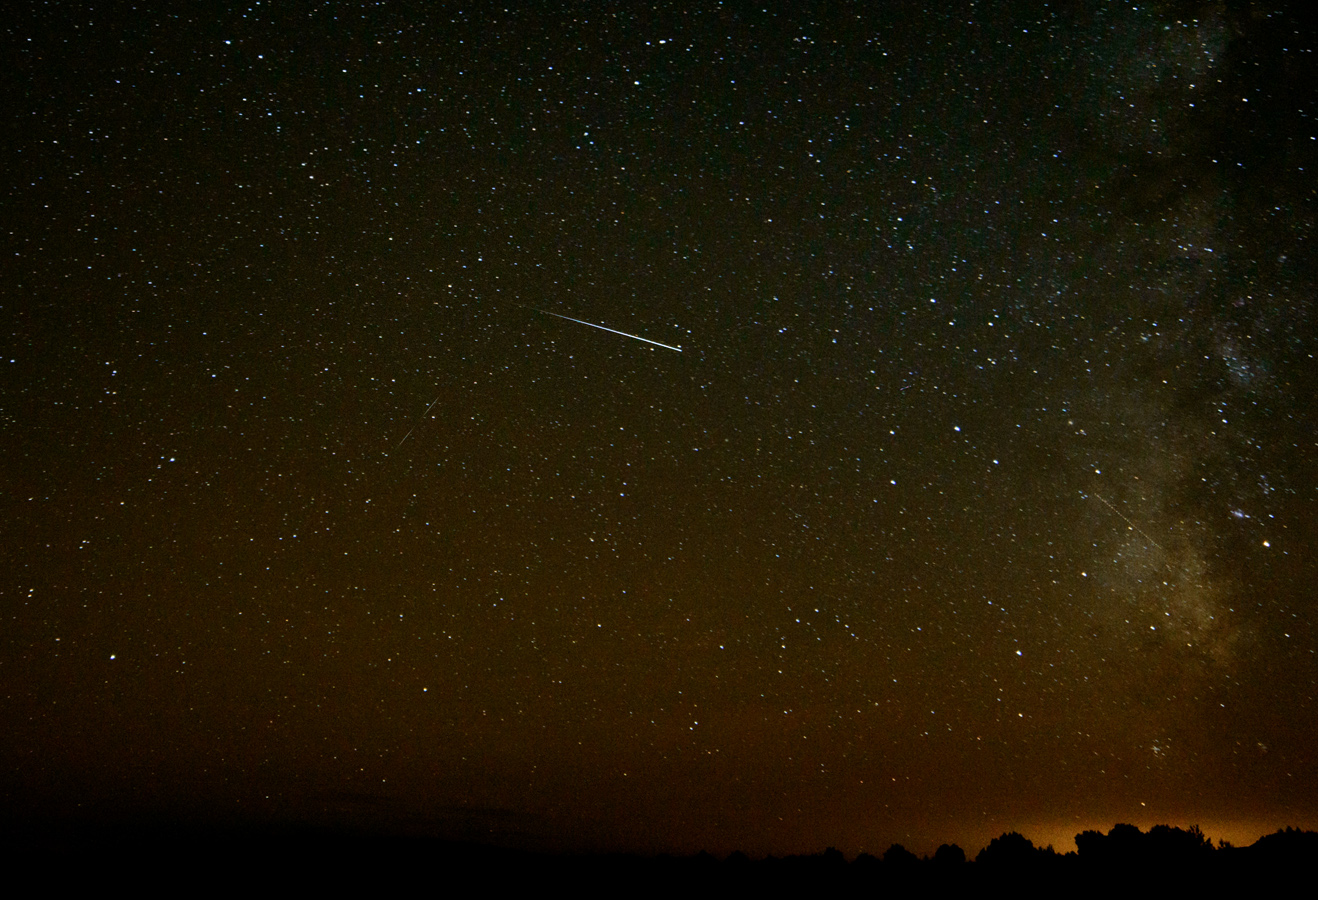 A meteor shoots across the sky above the Cosmic Campground in New Mexico. (David Thornburg)